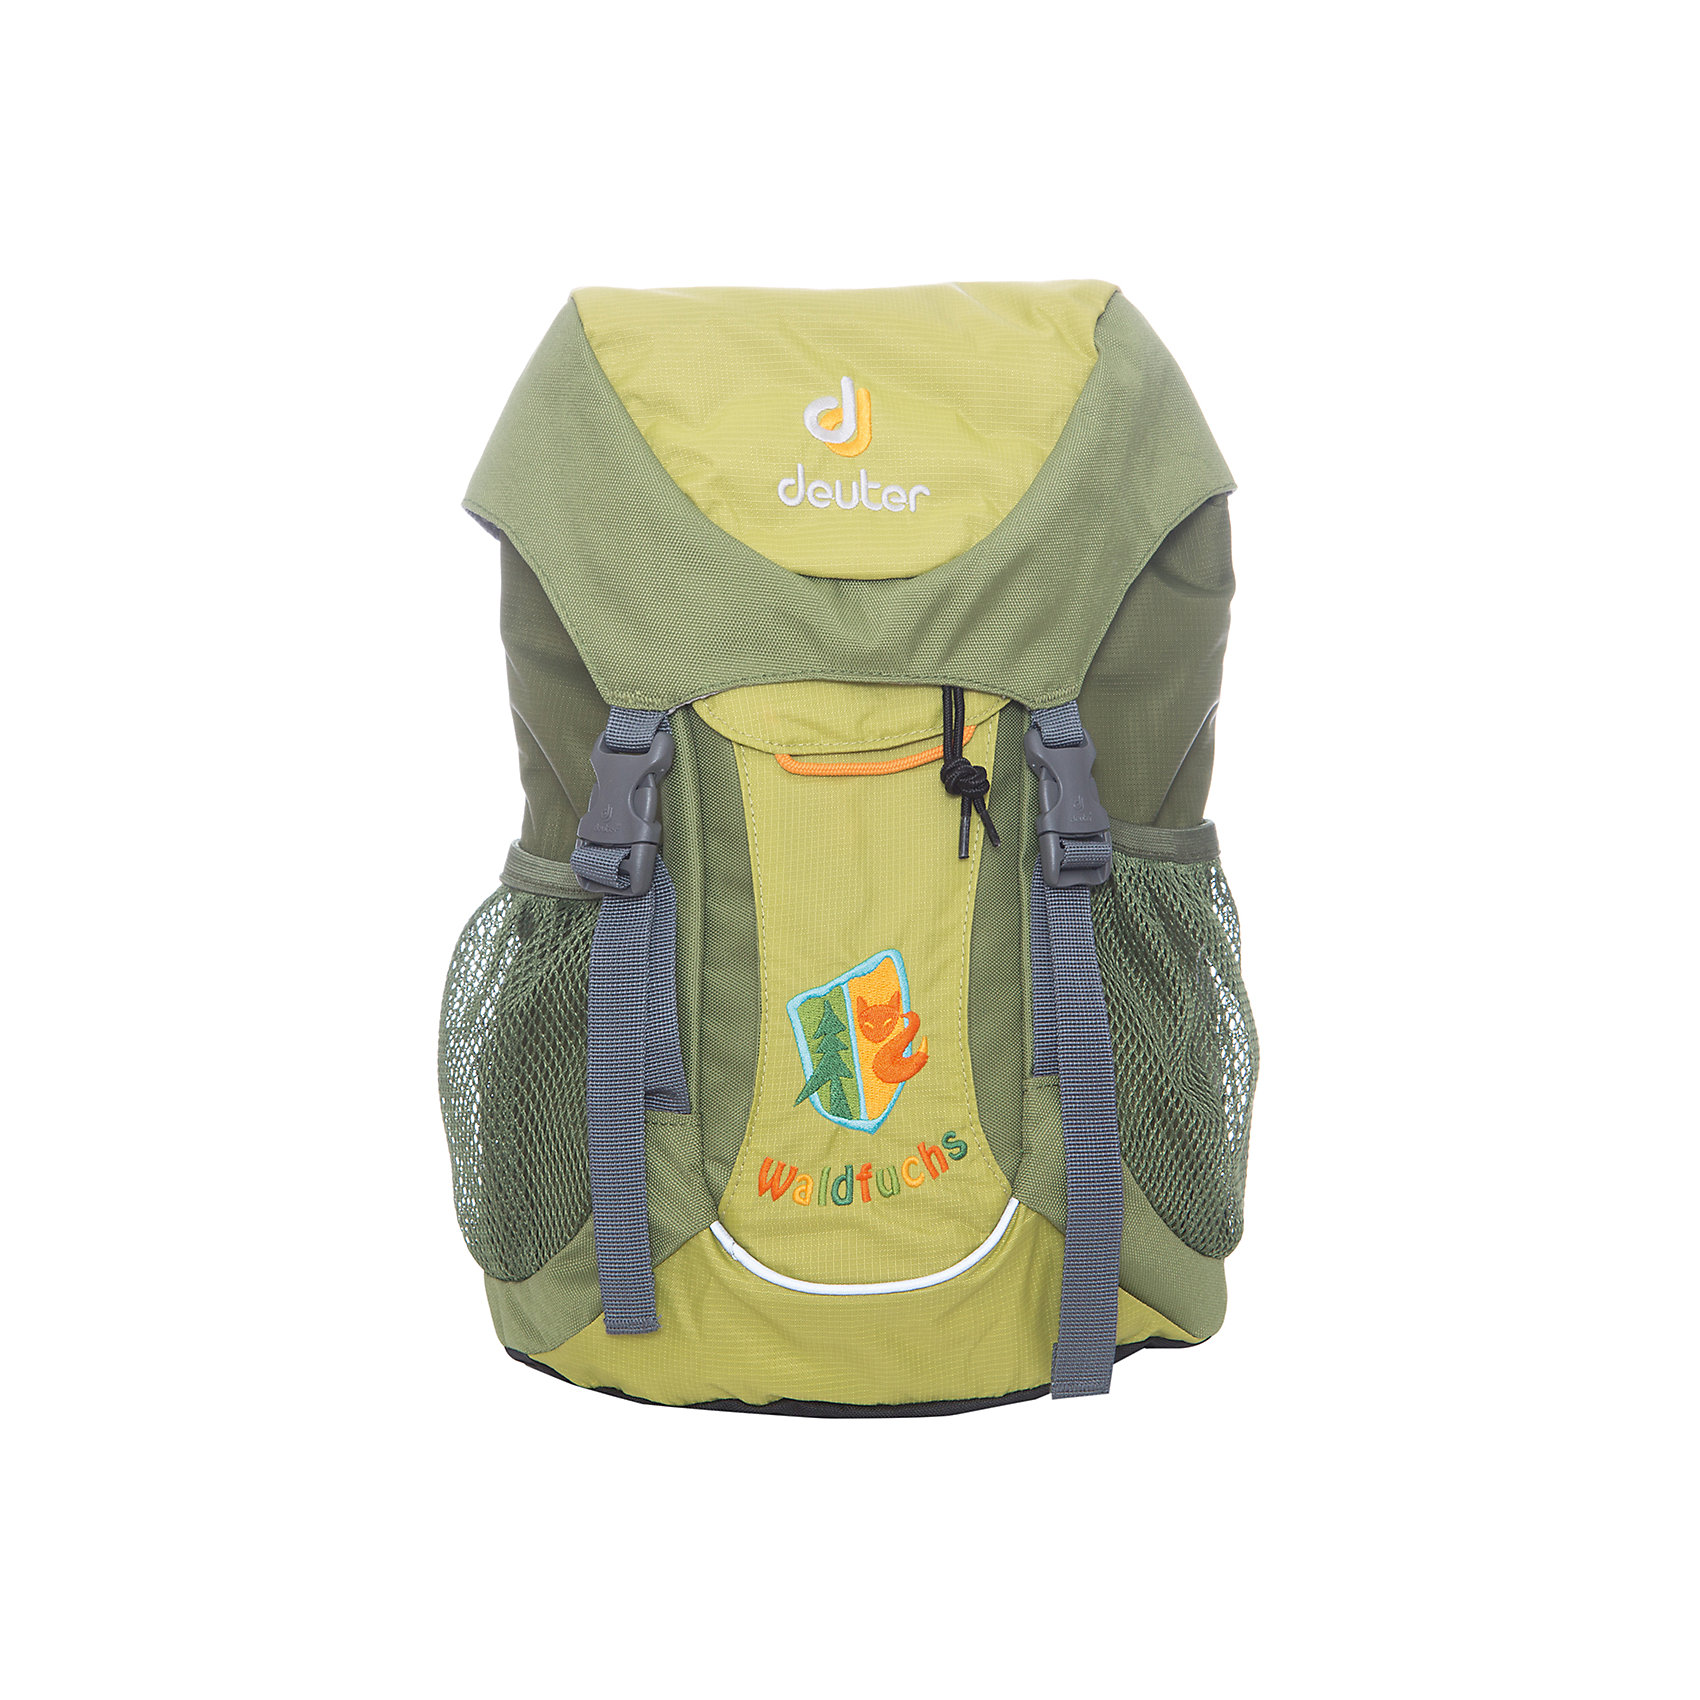 Deuter Рюкзак Waldfuchs, зеленый рюкзак deuter giga grey